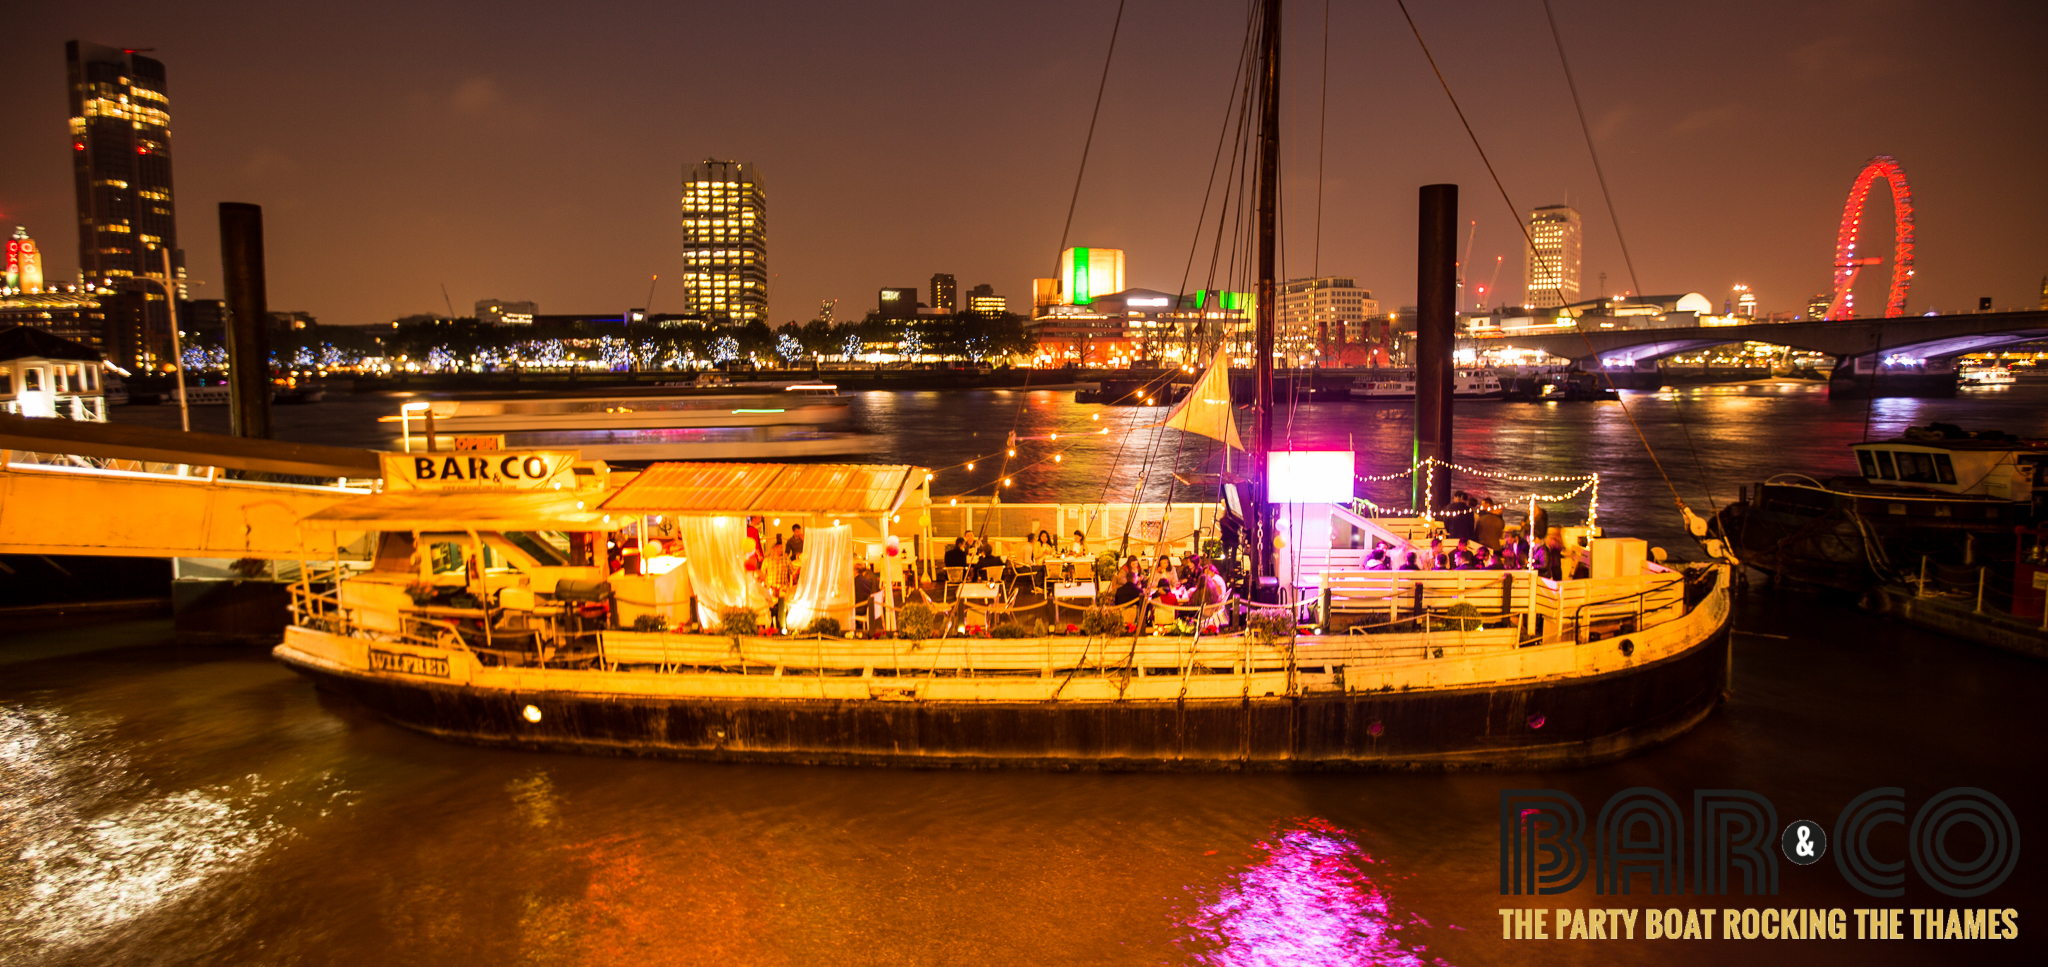 ghost ship halloween party on thames | embankment, london boat party